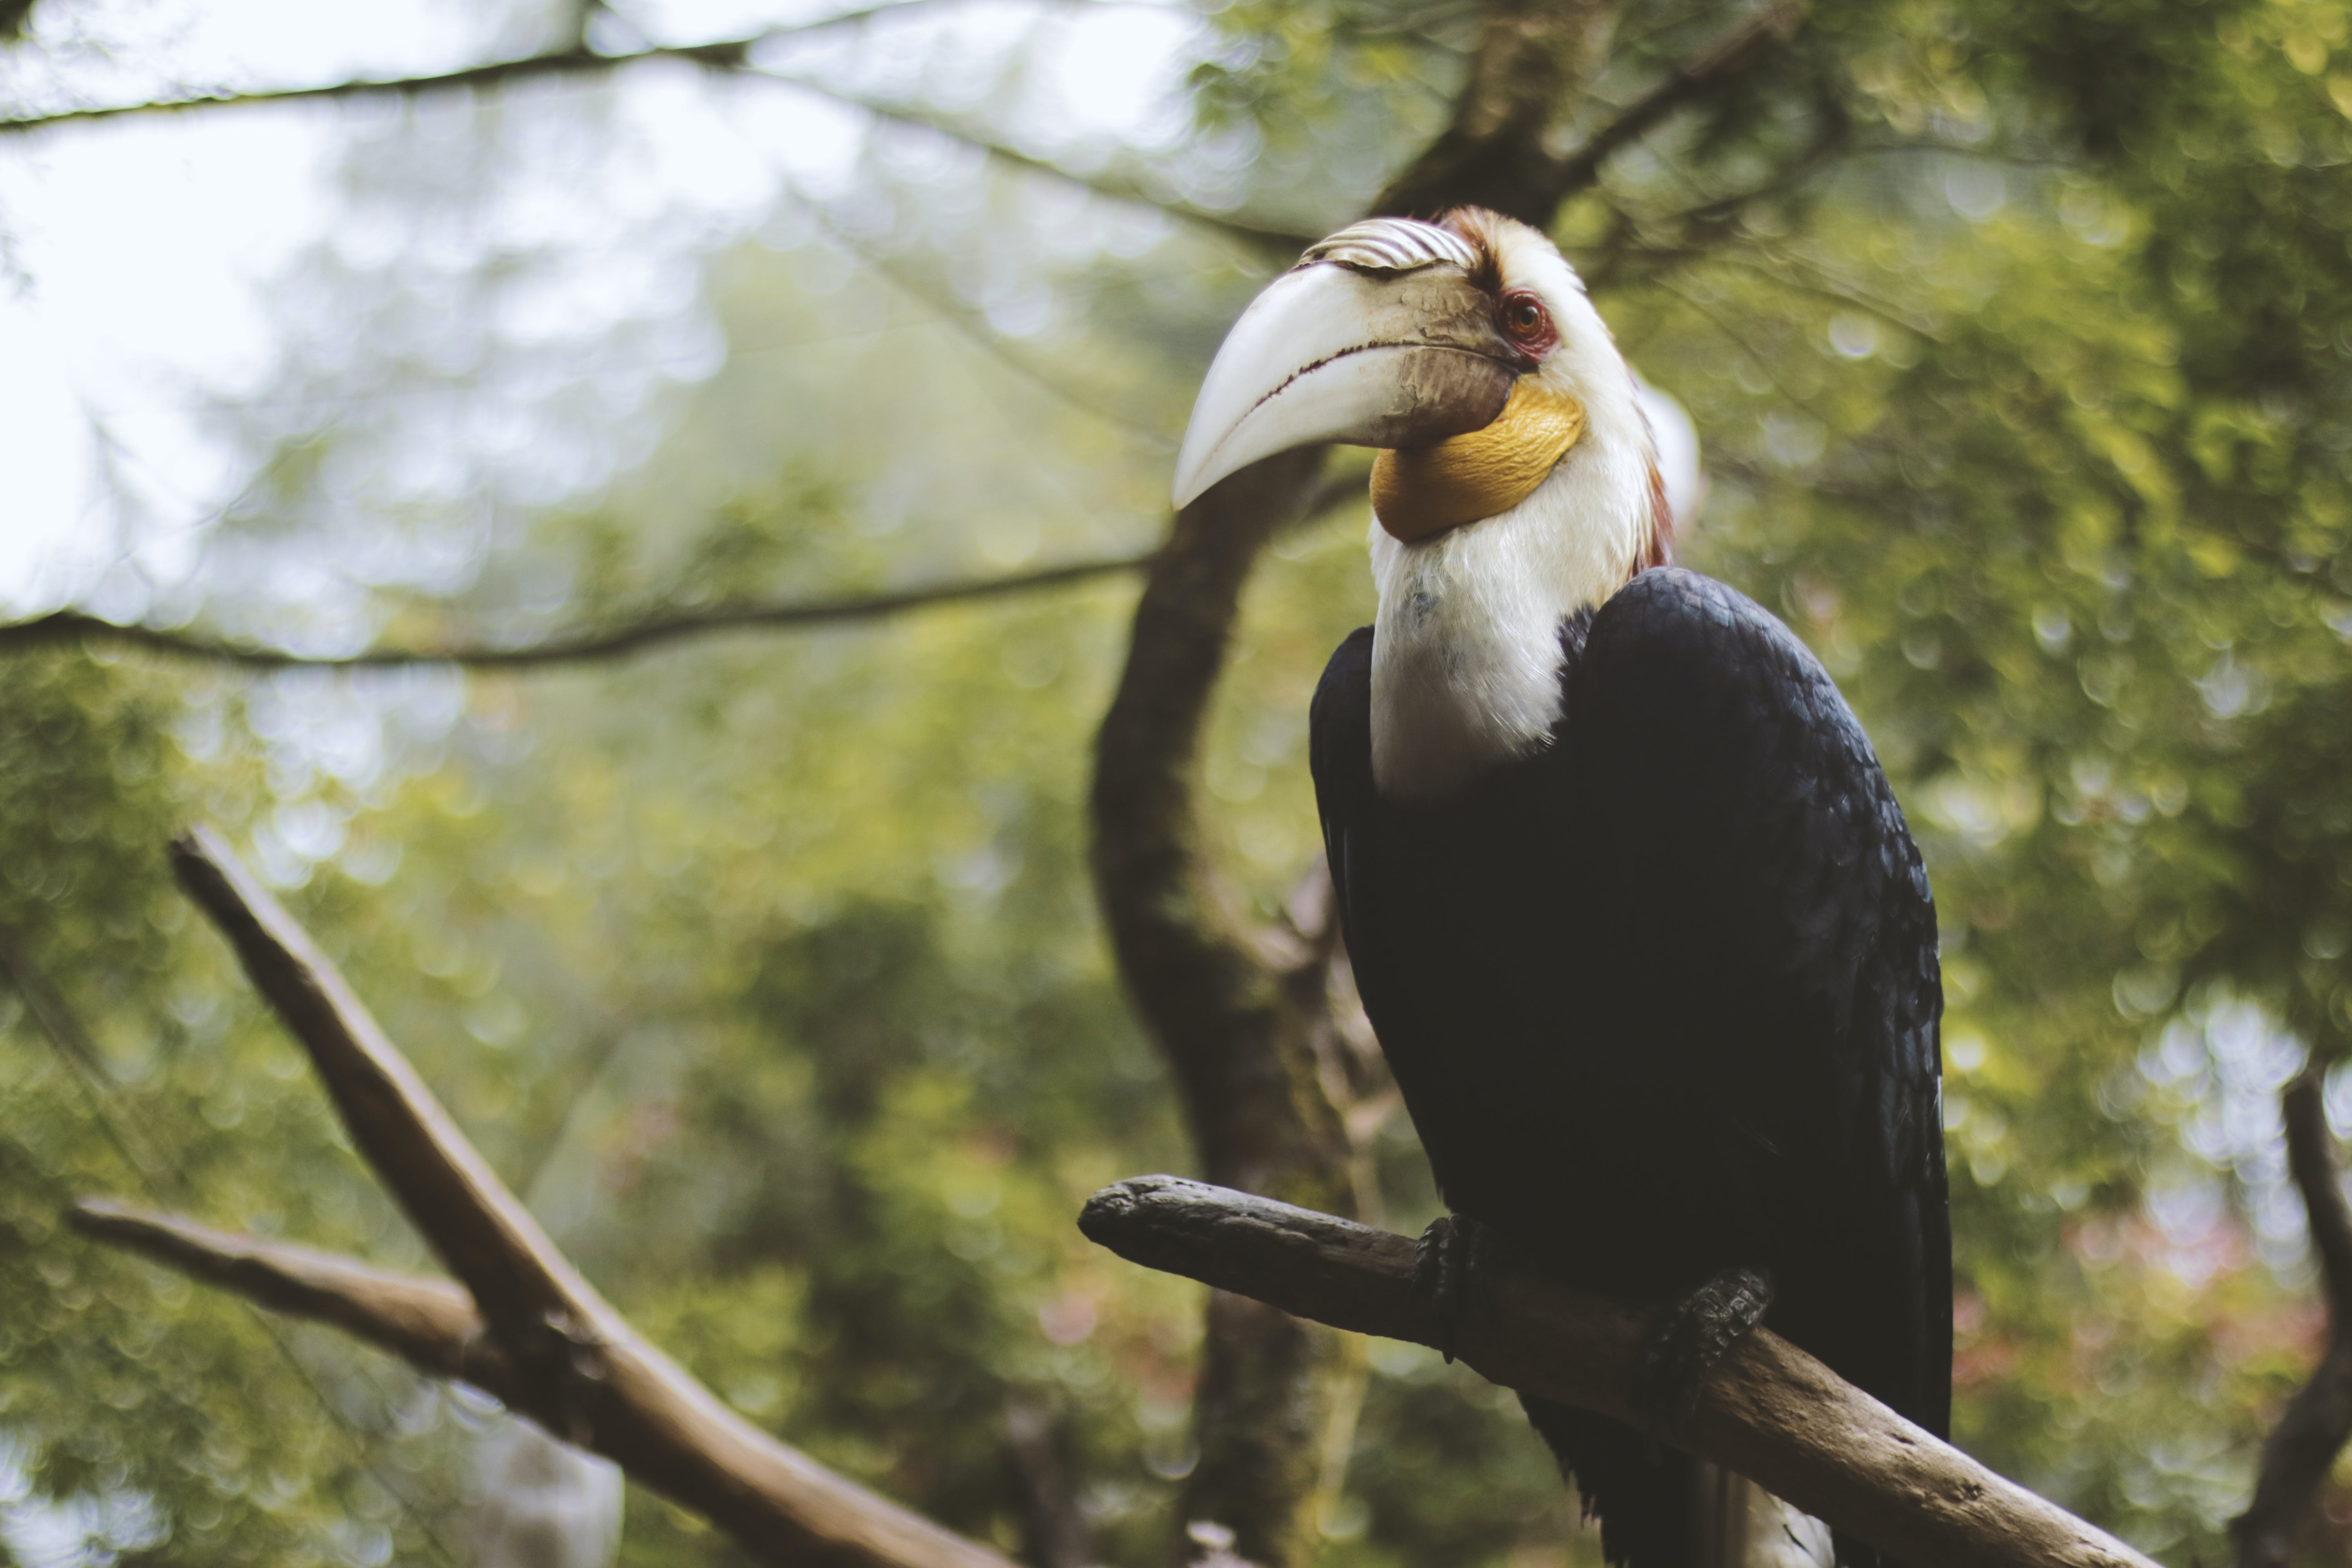 Photo of a Black and White Wreathed Hornbill Perched on a Branch.